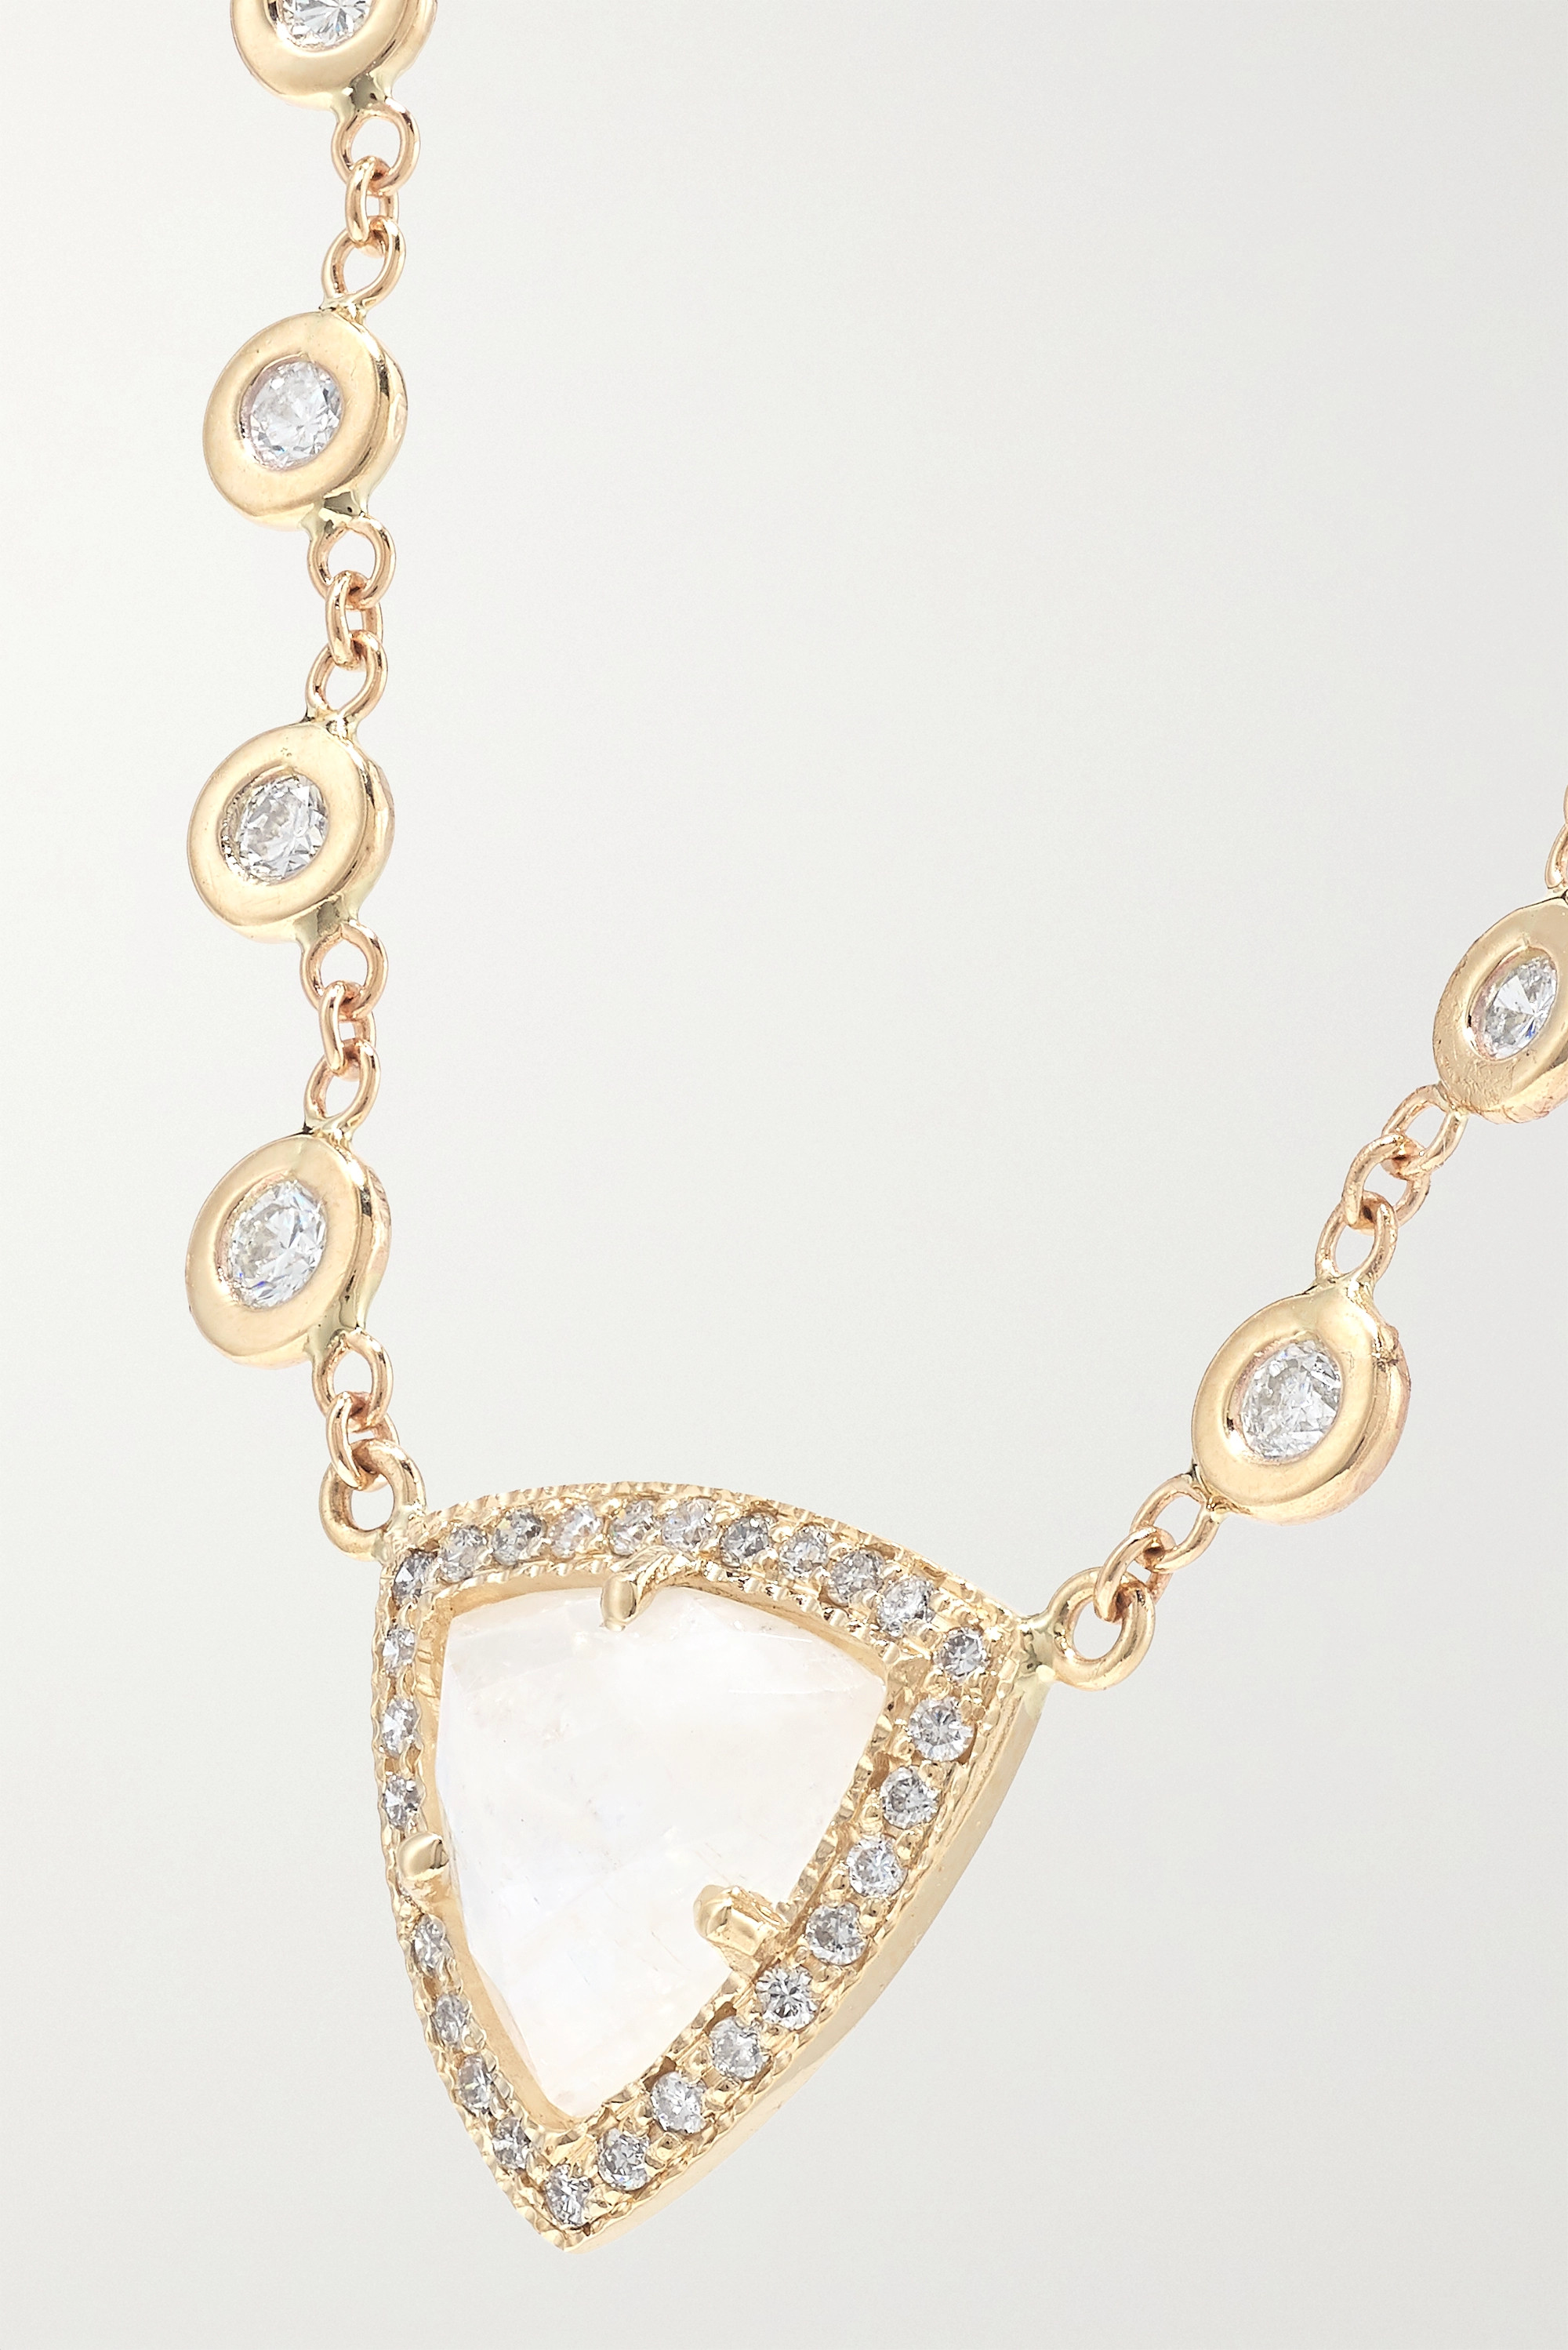 Jacquie Aiche Emily 14-karat gold, moonstone and diamond necklace